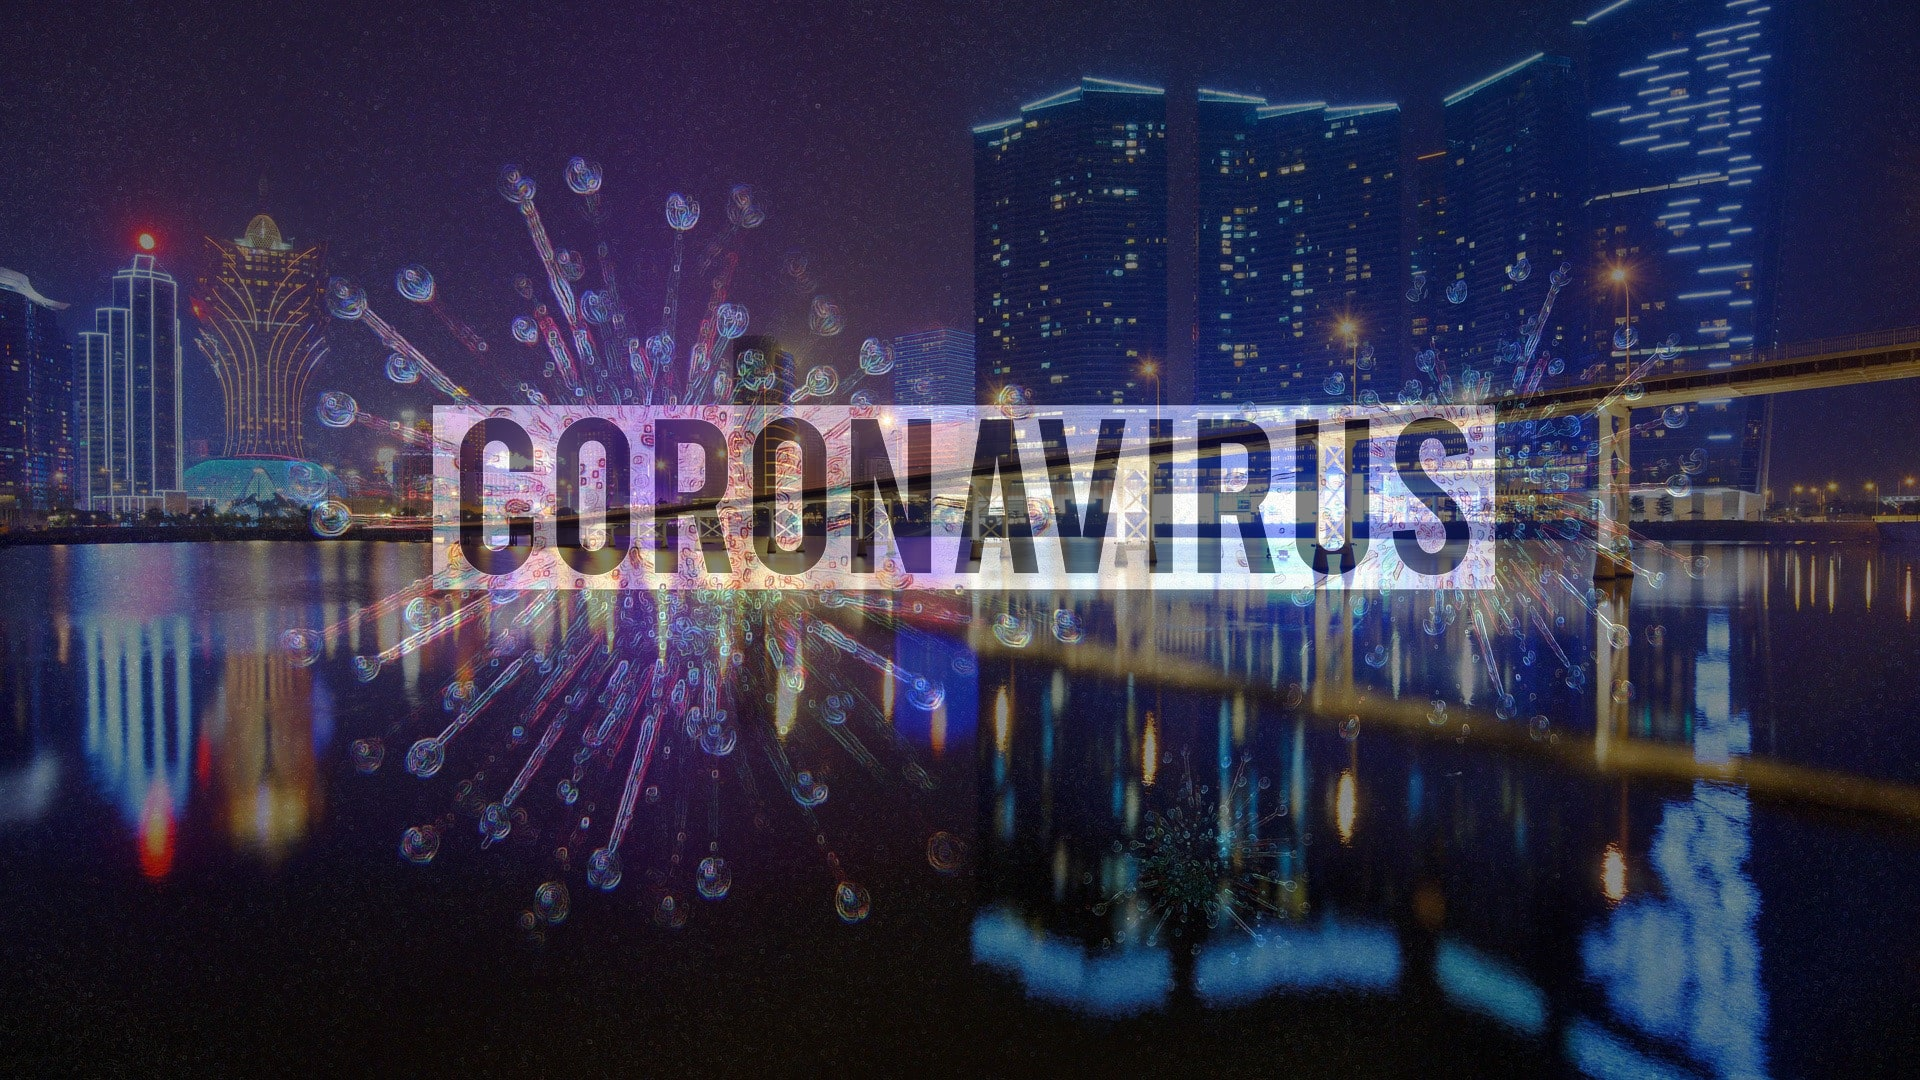 Casinos in Macau Showed a Record Drop in Profits Due to Coronavirus